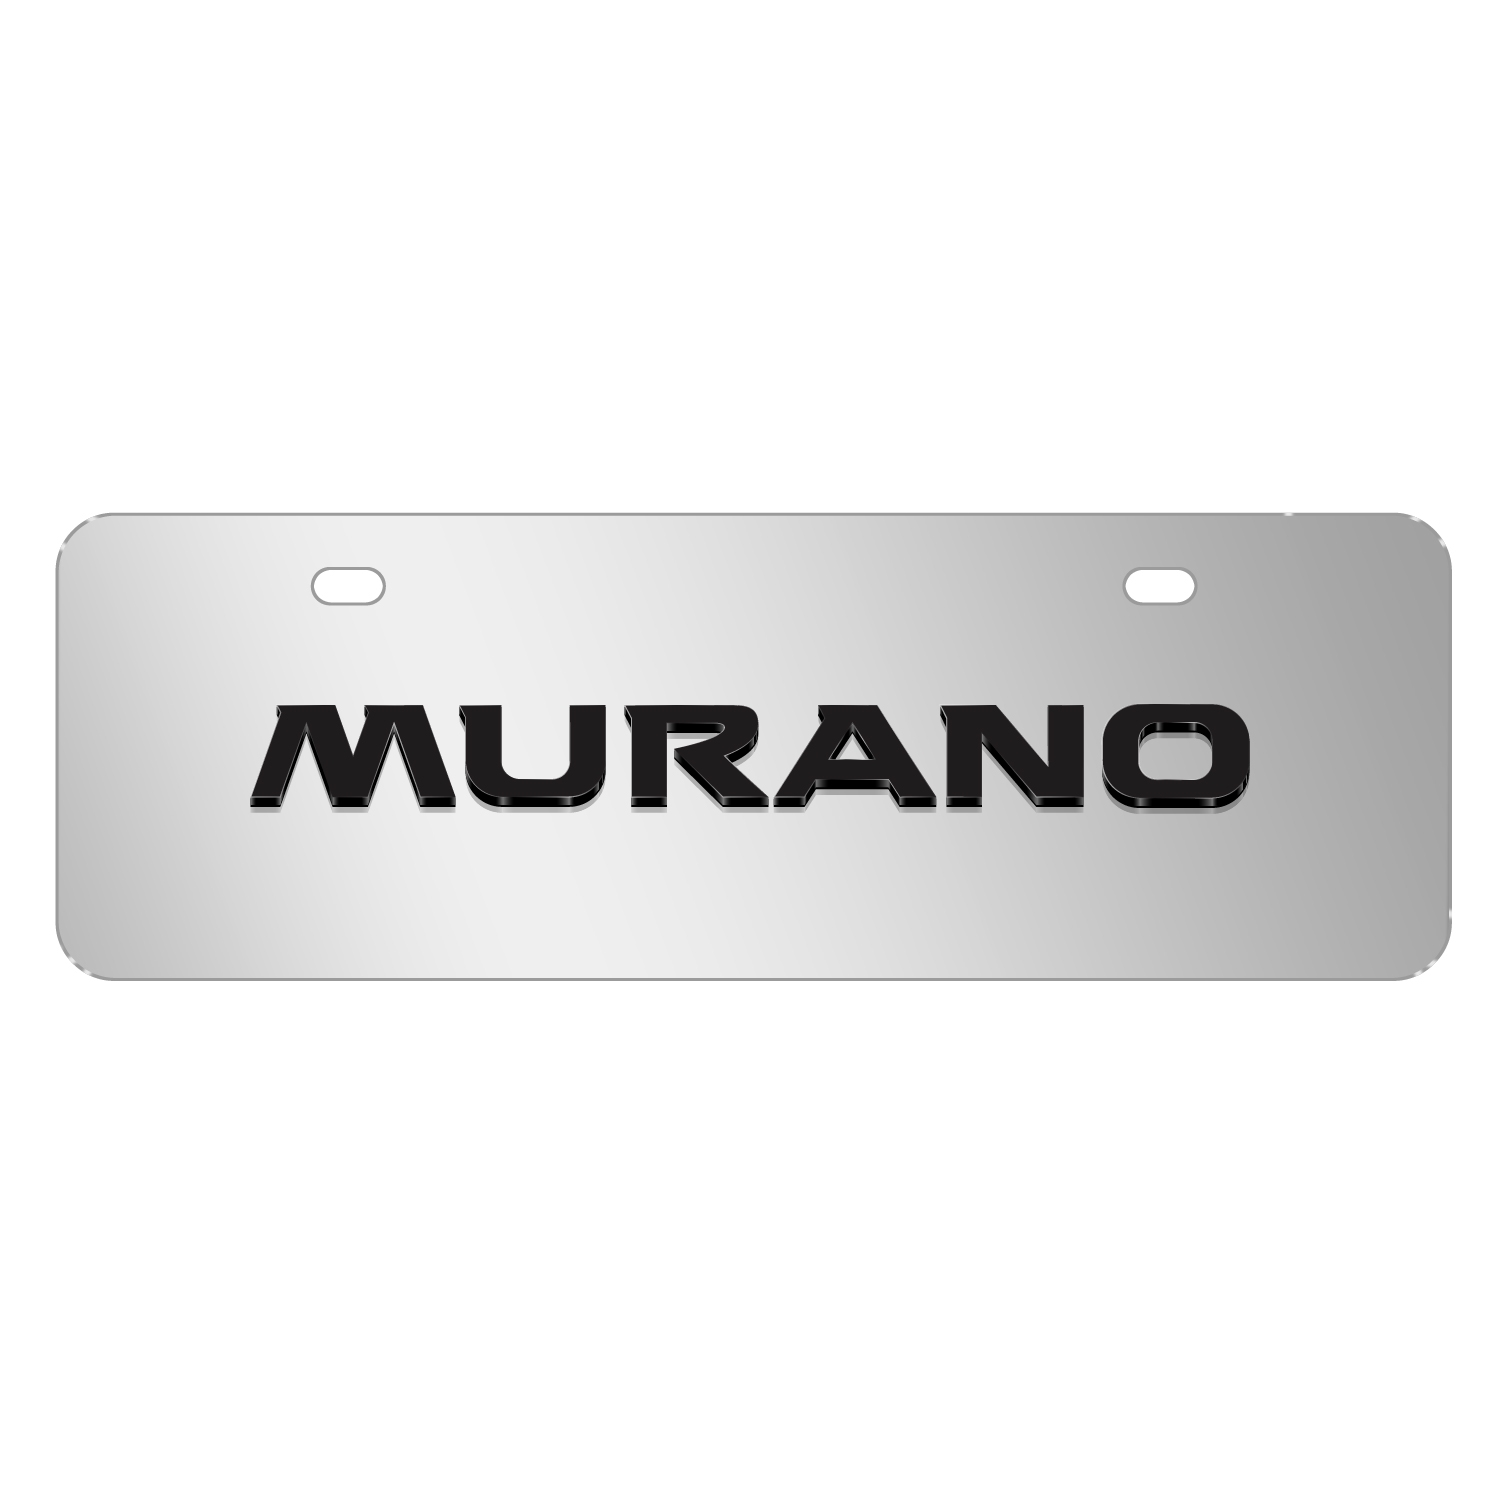 """Nissan Murano 3D Mirror Chrome 12""""x4"""" Half-Size Stainless Steel License Plate"""